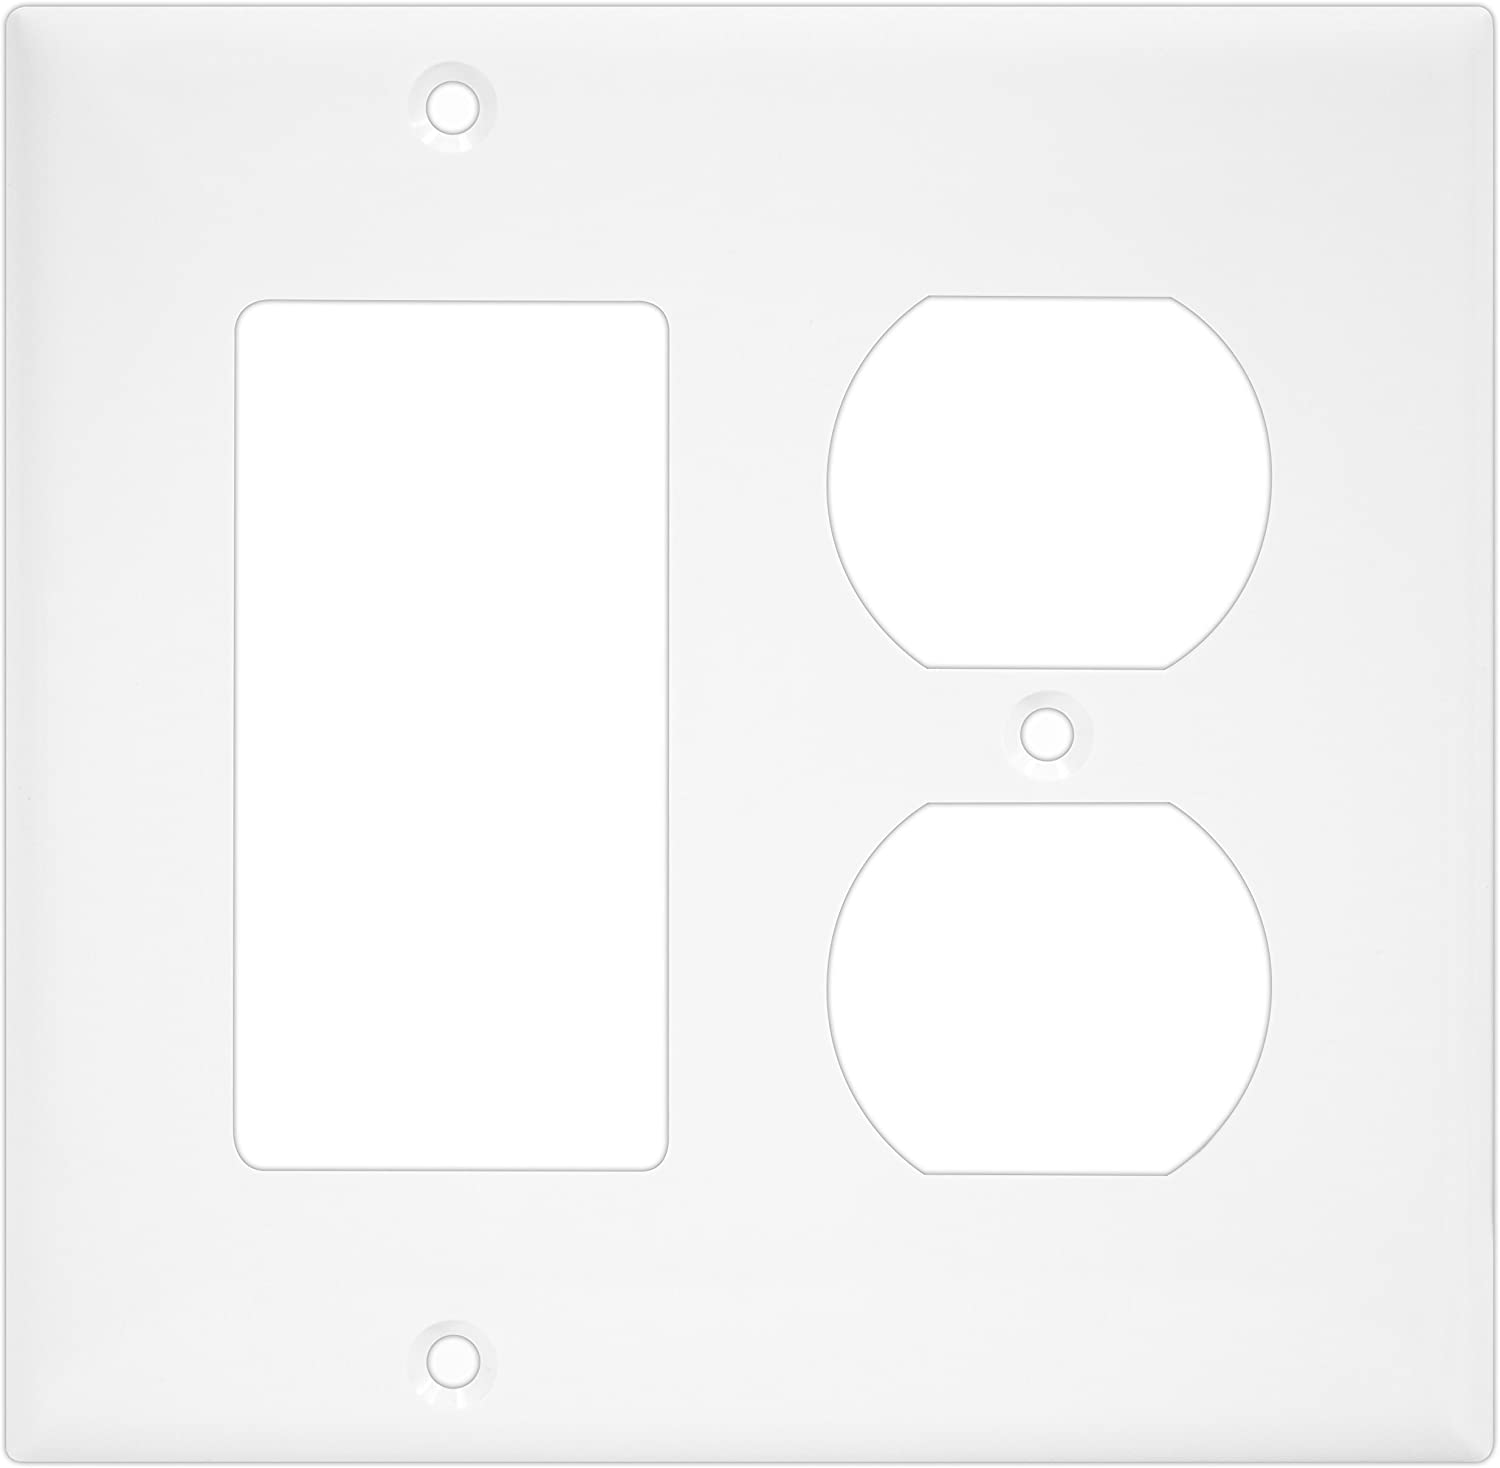 """ENERLITES Combination Duplex Receptacle Outlet/Decorator Switch Wall Plate, Mid-Size 2-Gang 4.88"""" x 4.92"""", Polycarbonate Thermoplastic, 882131M-W, White"""